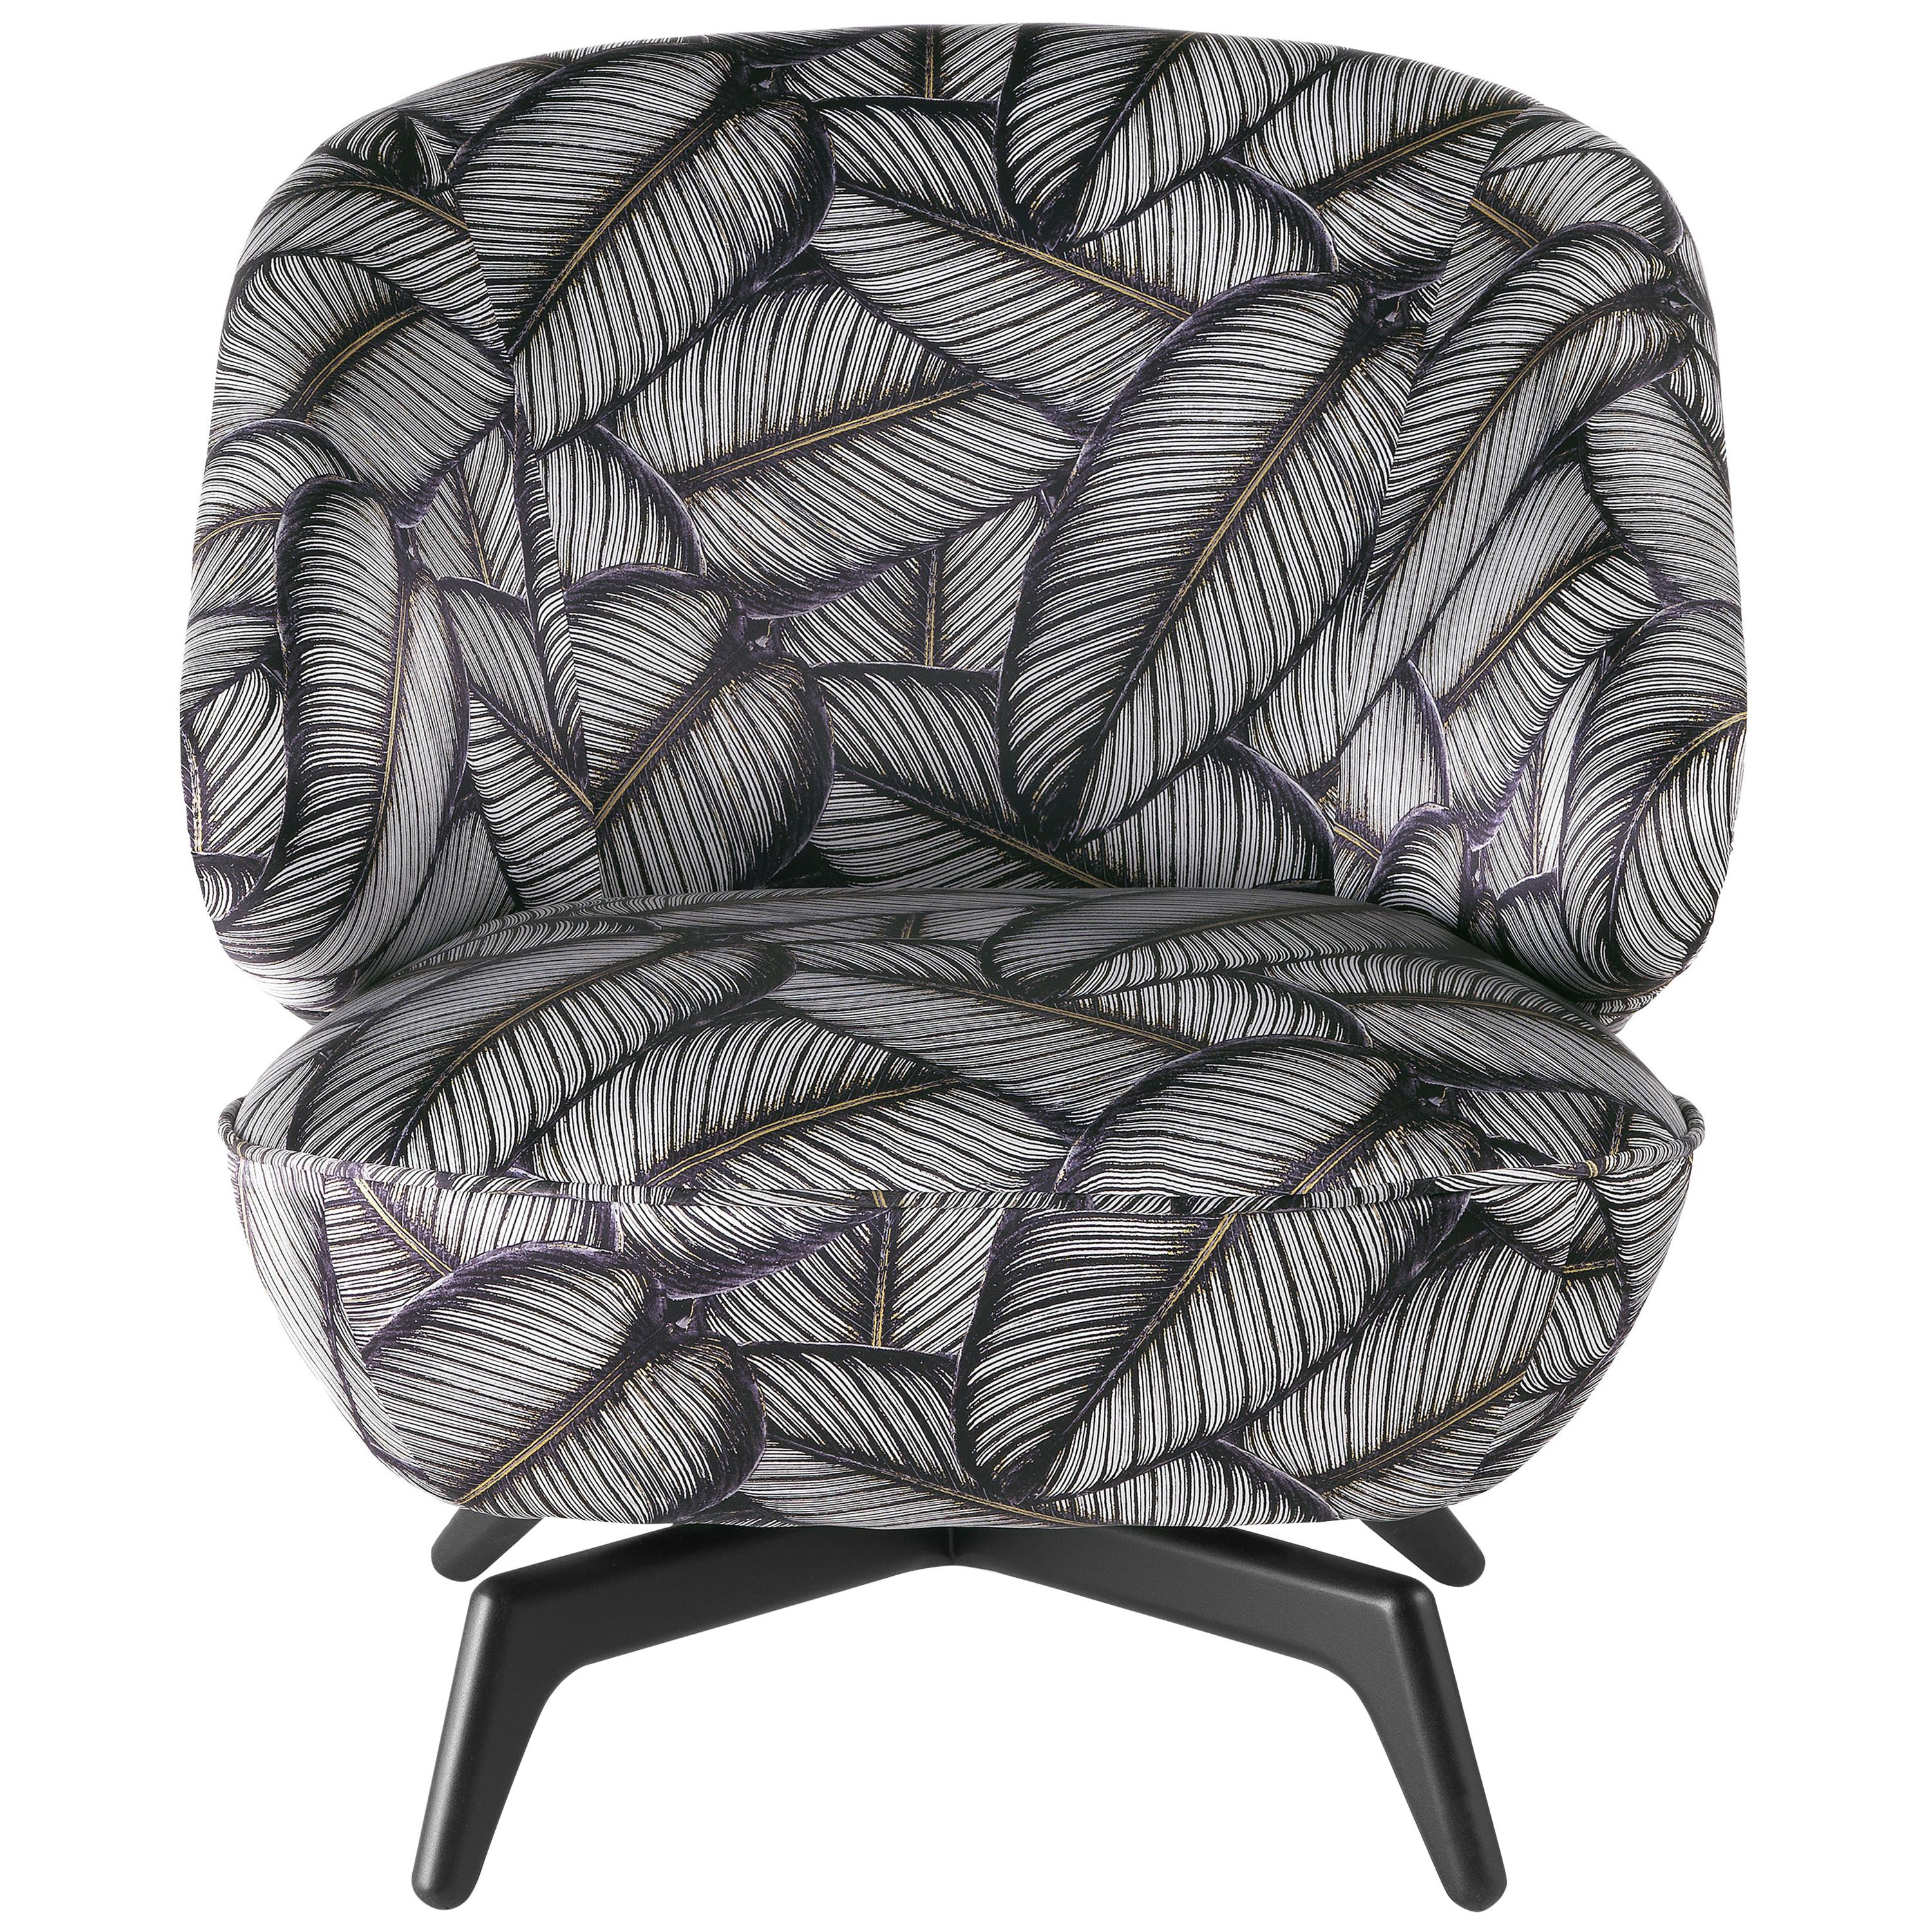 Key West Armchair in Silk by Roberto Cavalli Home Interiors